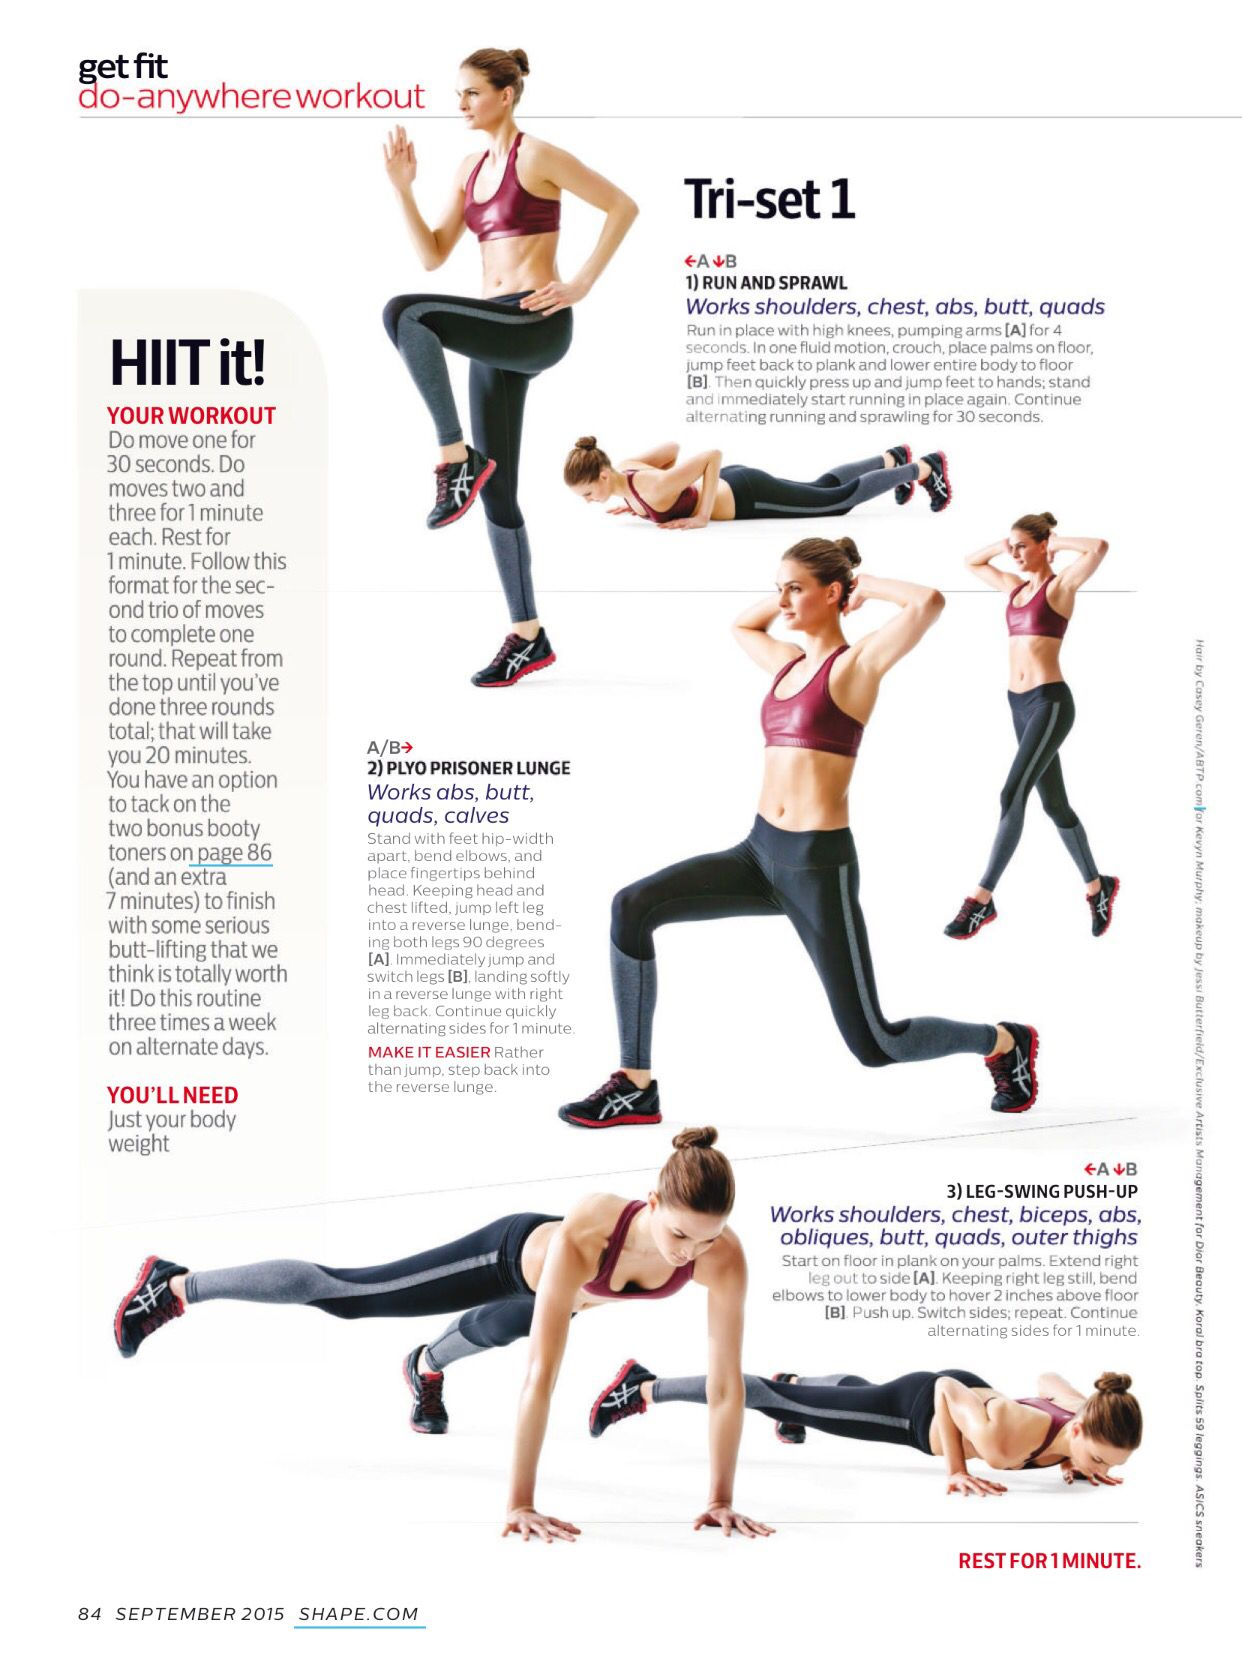 Pin By Lilly H On Get Fit Workout Get Fit Bodyweight Workout